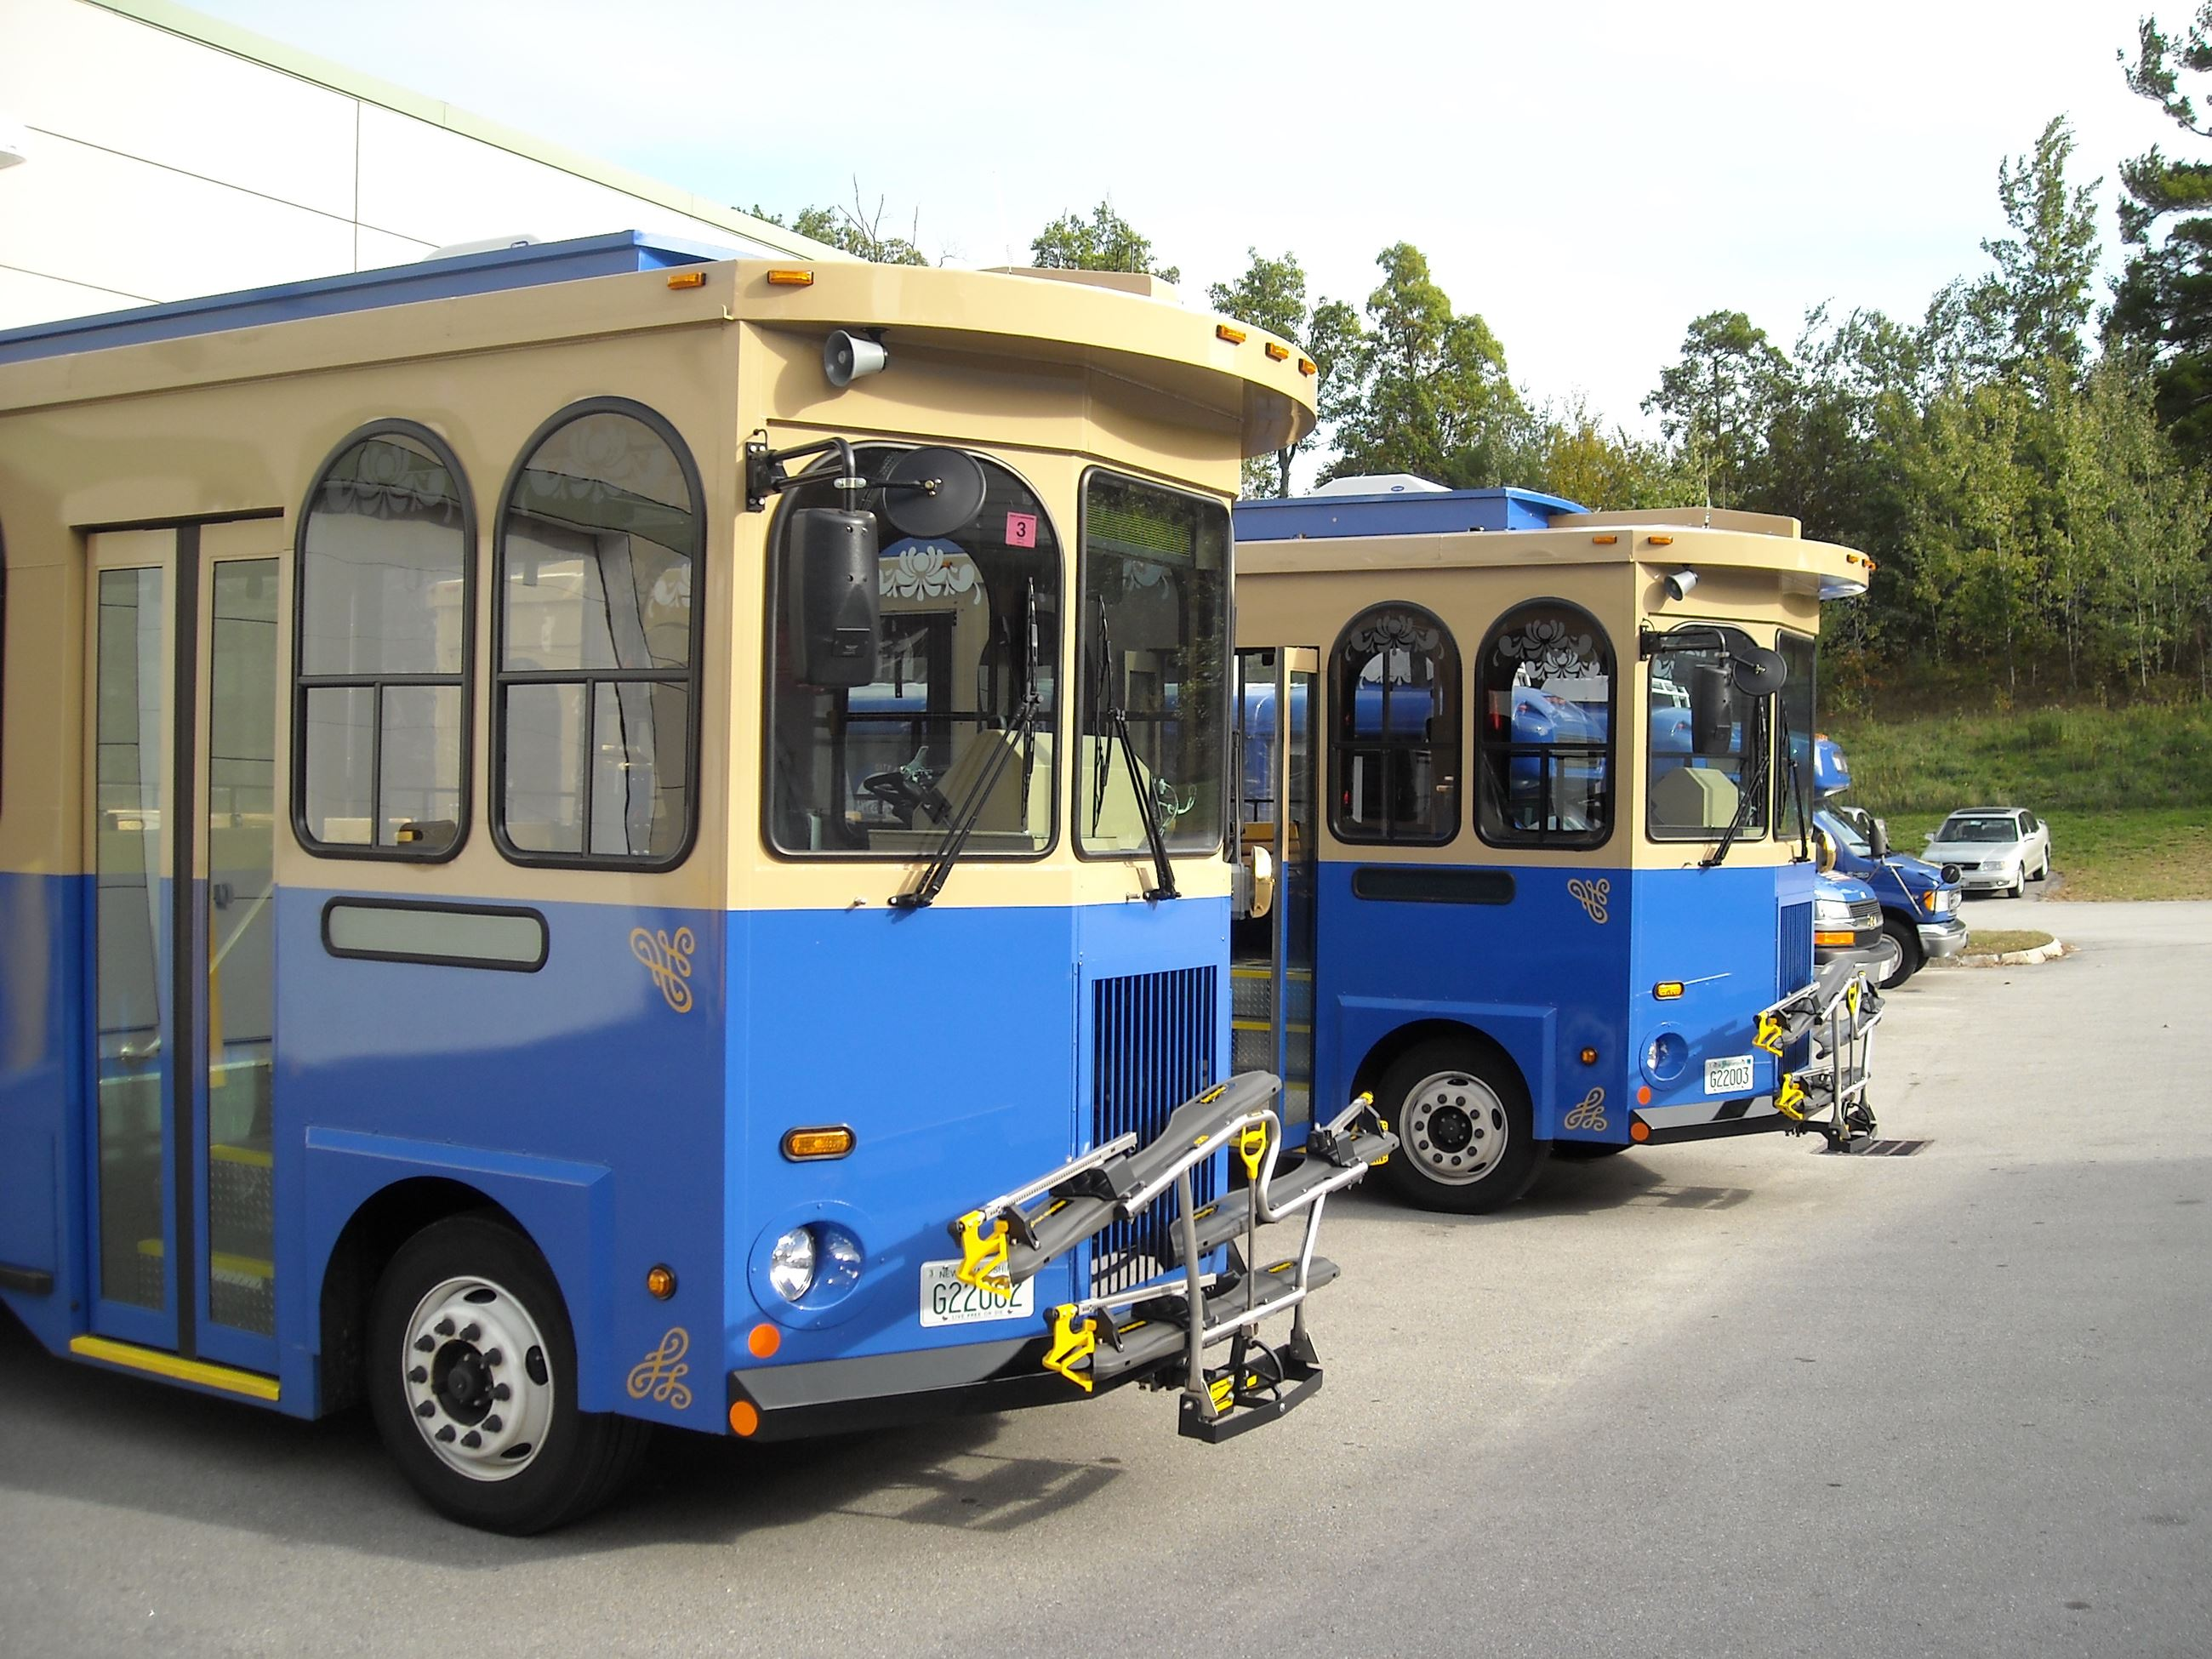 2 blue and gold trolleys sit outside of the Nashua Transit System garage